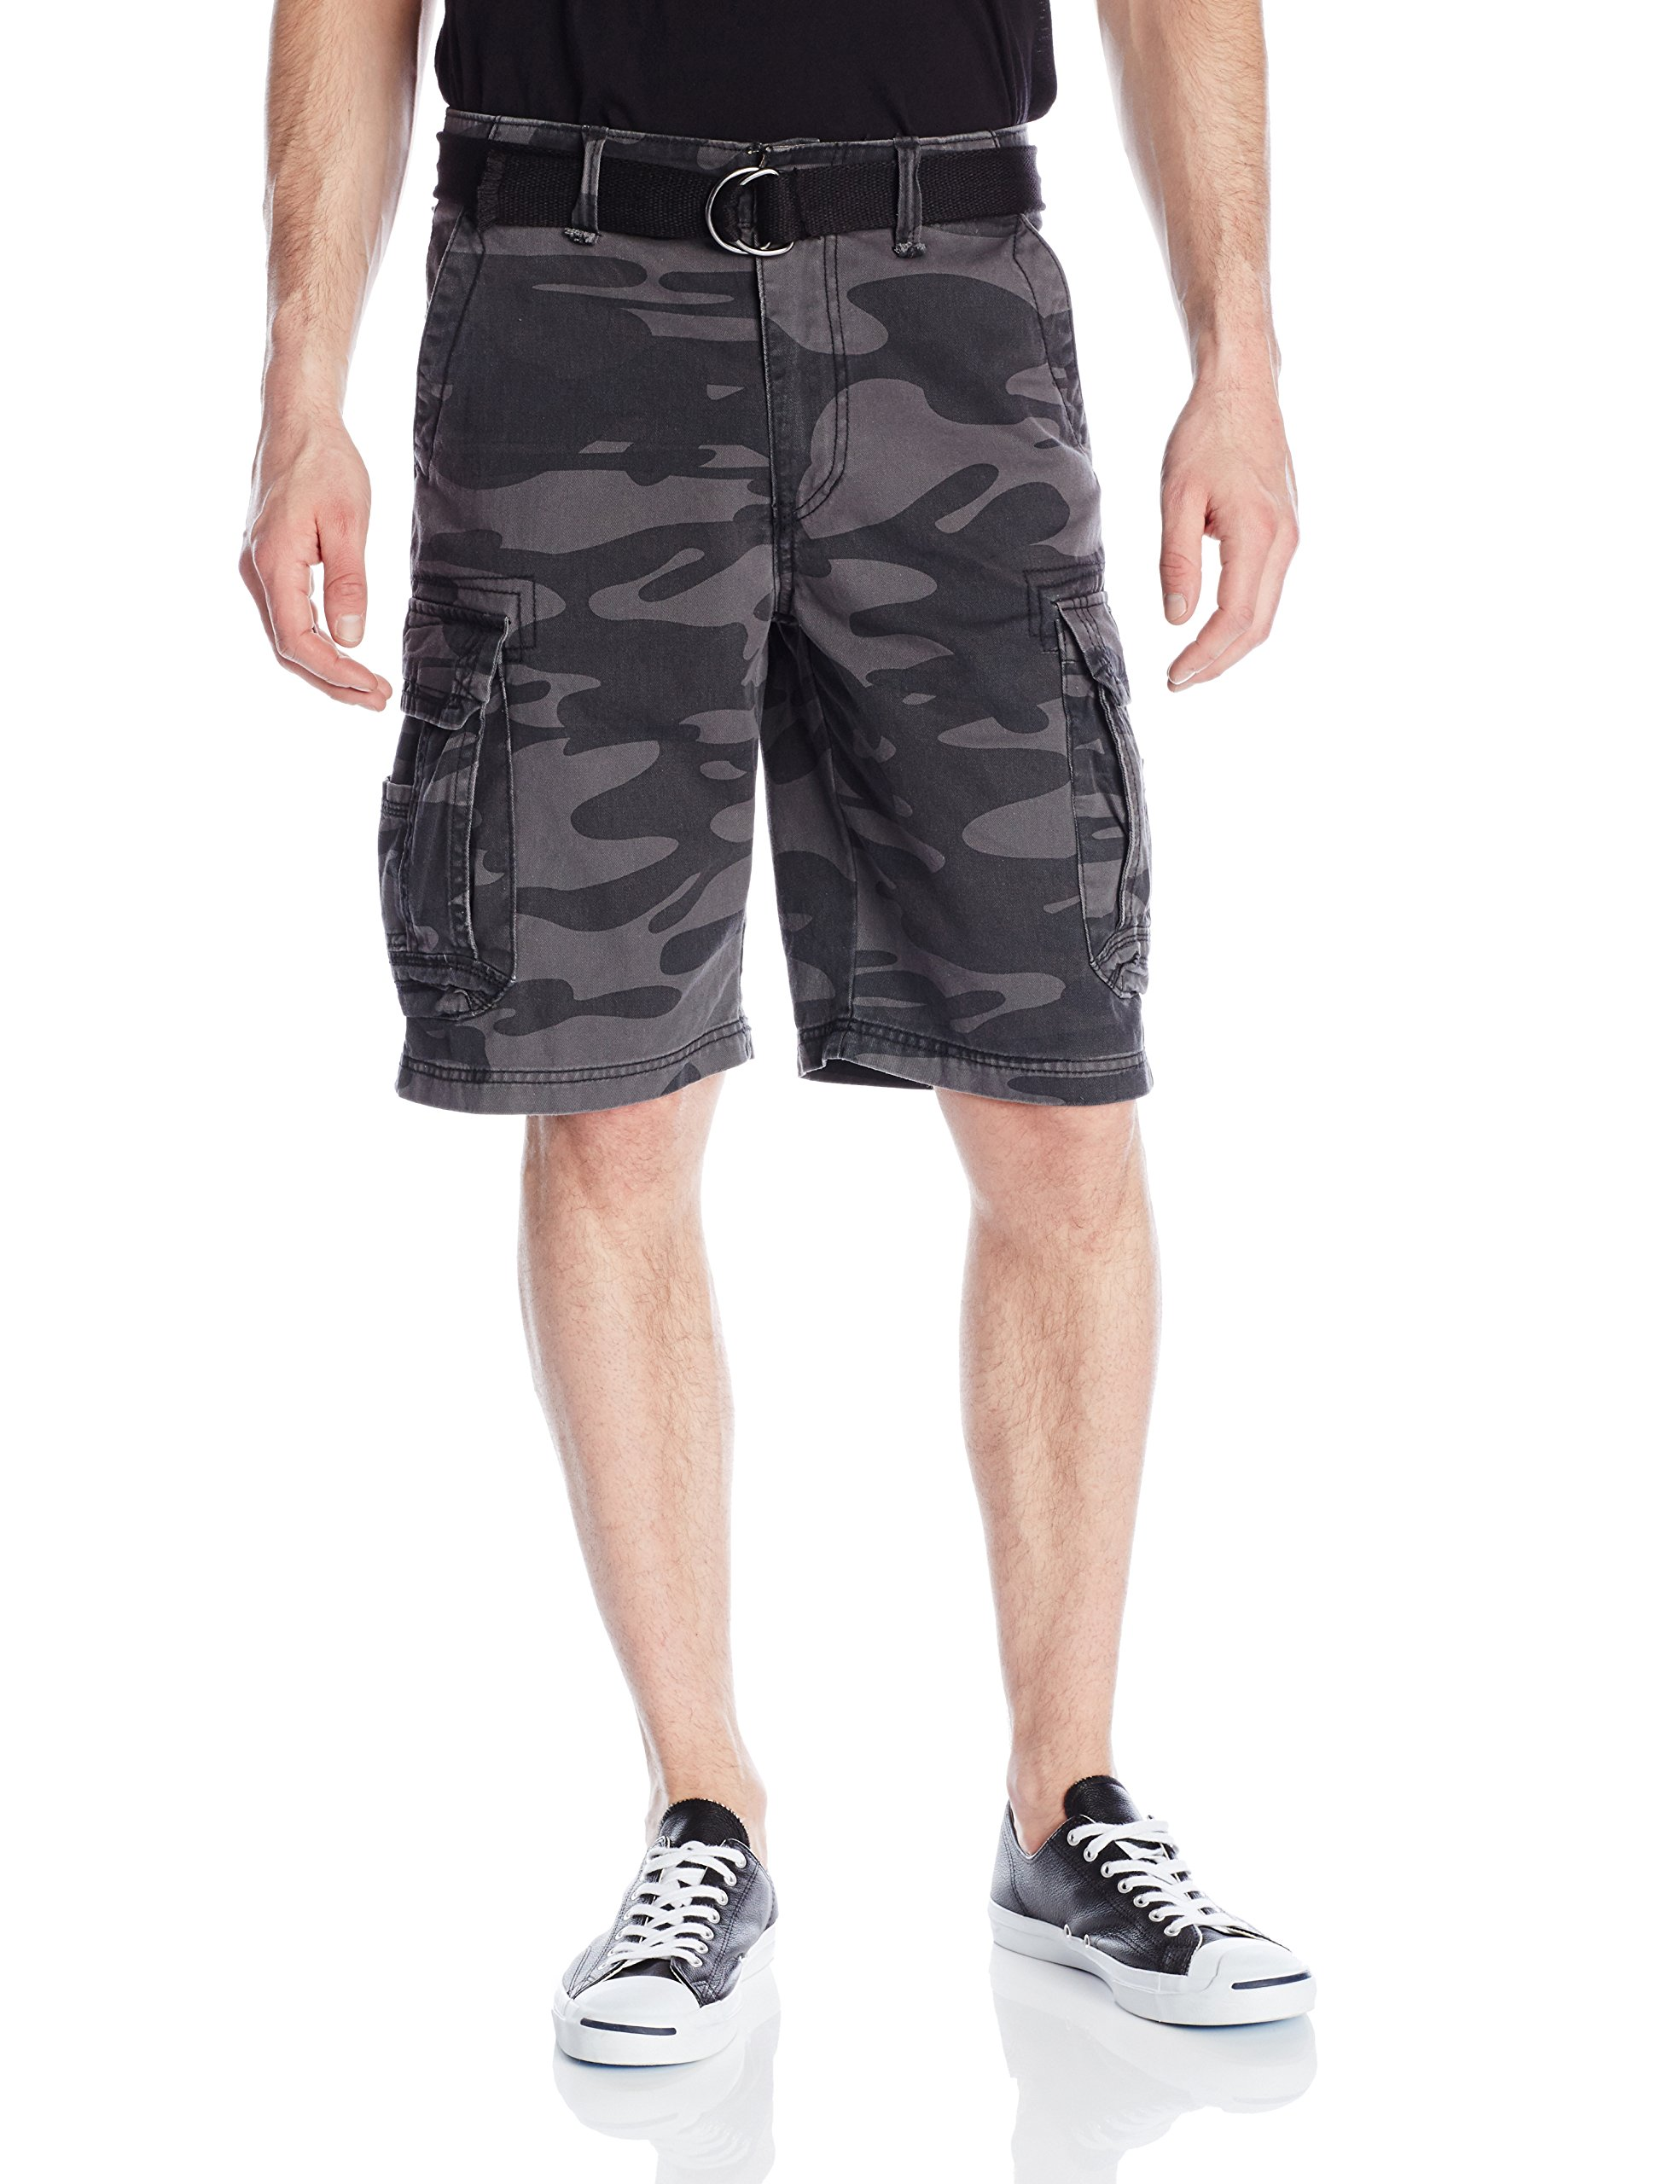 Unionbay Men's Survivor Belted Cargo Short, Black Camo, 30